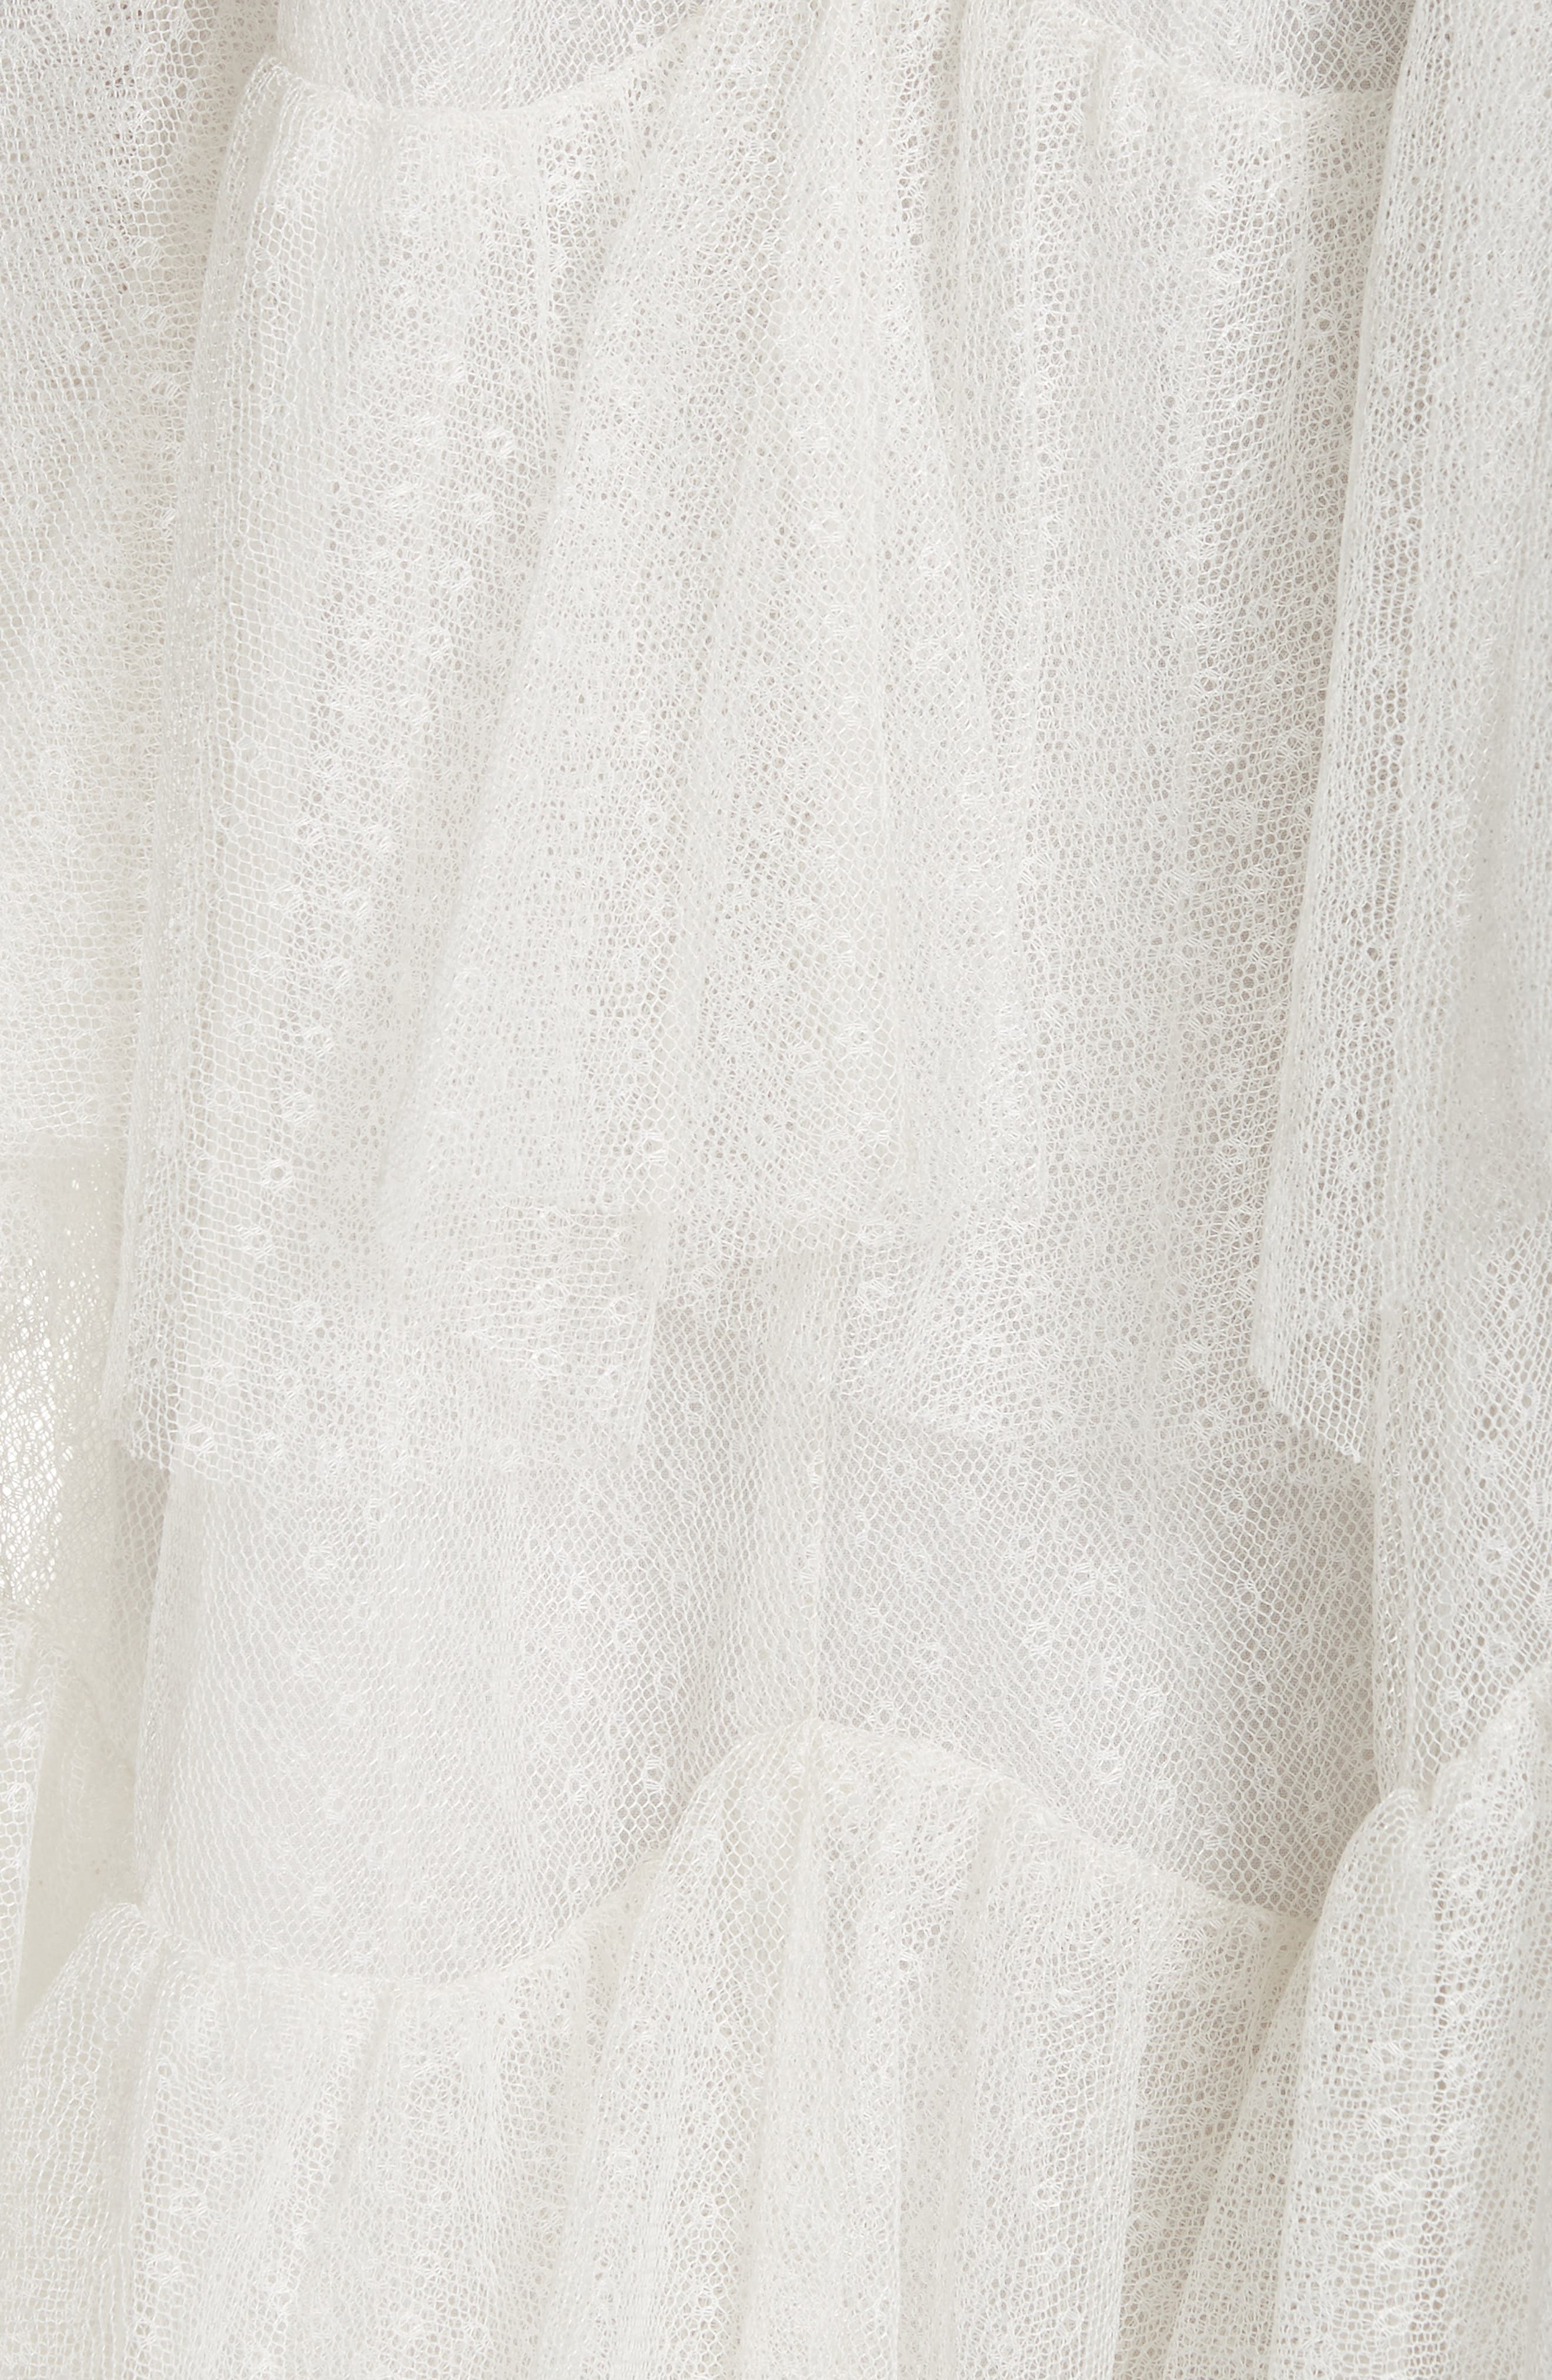 Tiered Tea Length Tulle Dress,                             Alternate thumbnail 5, color,                             PEARL